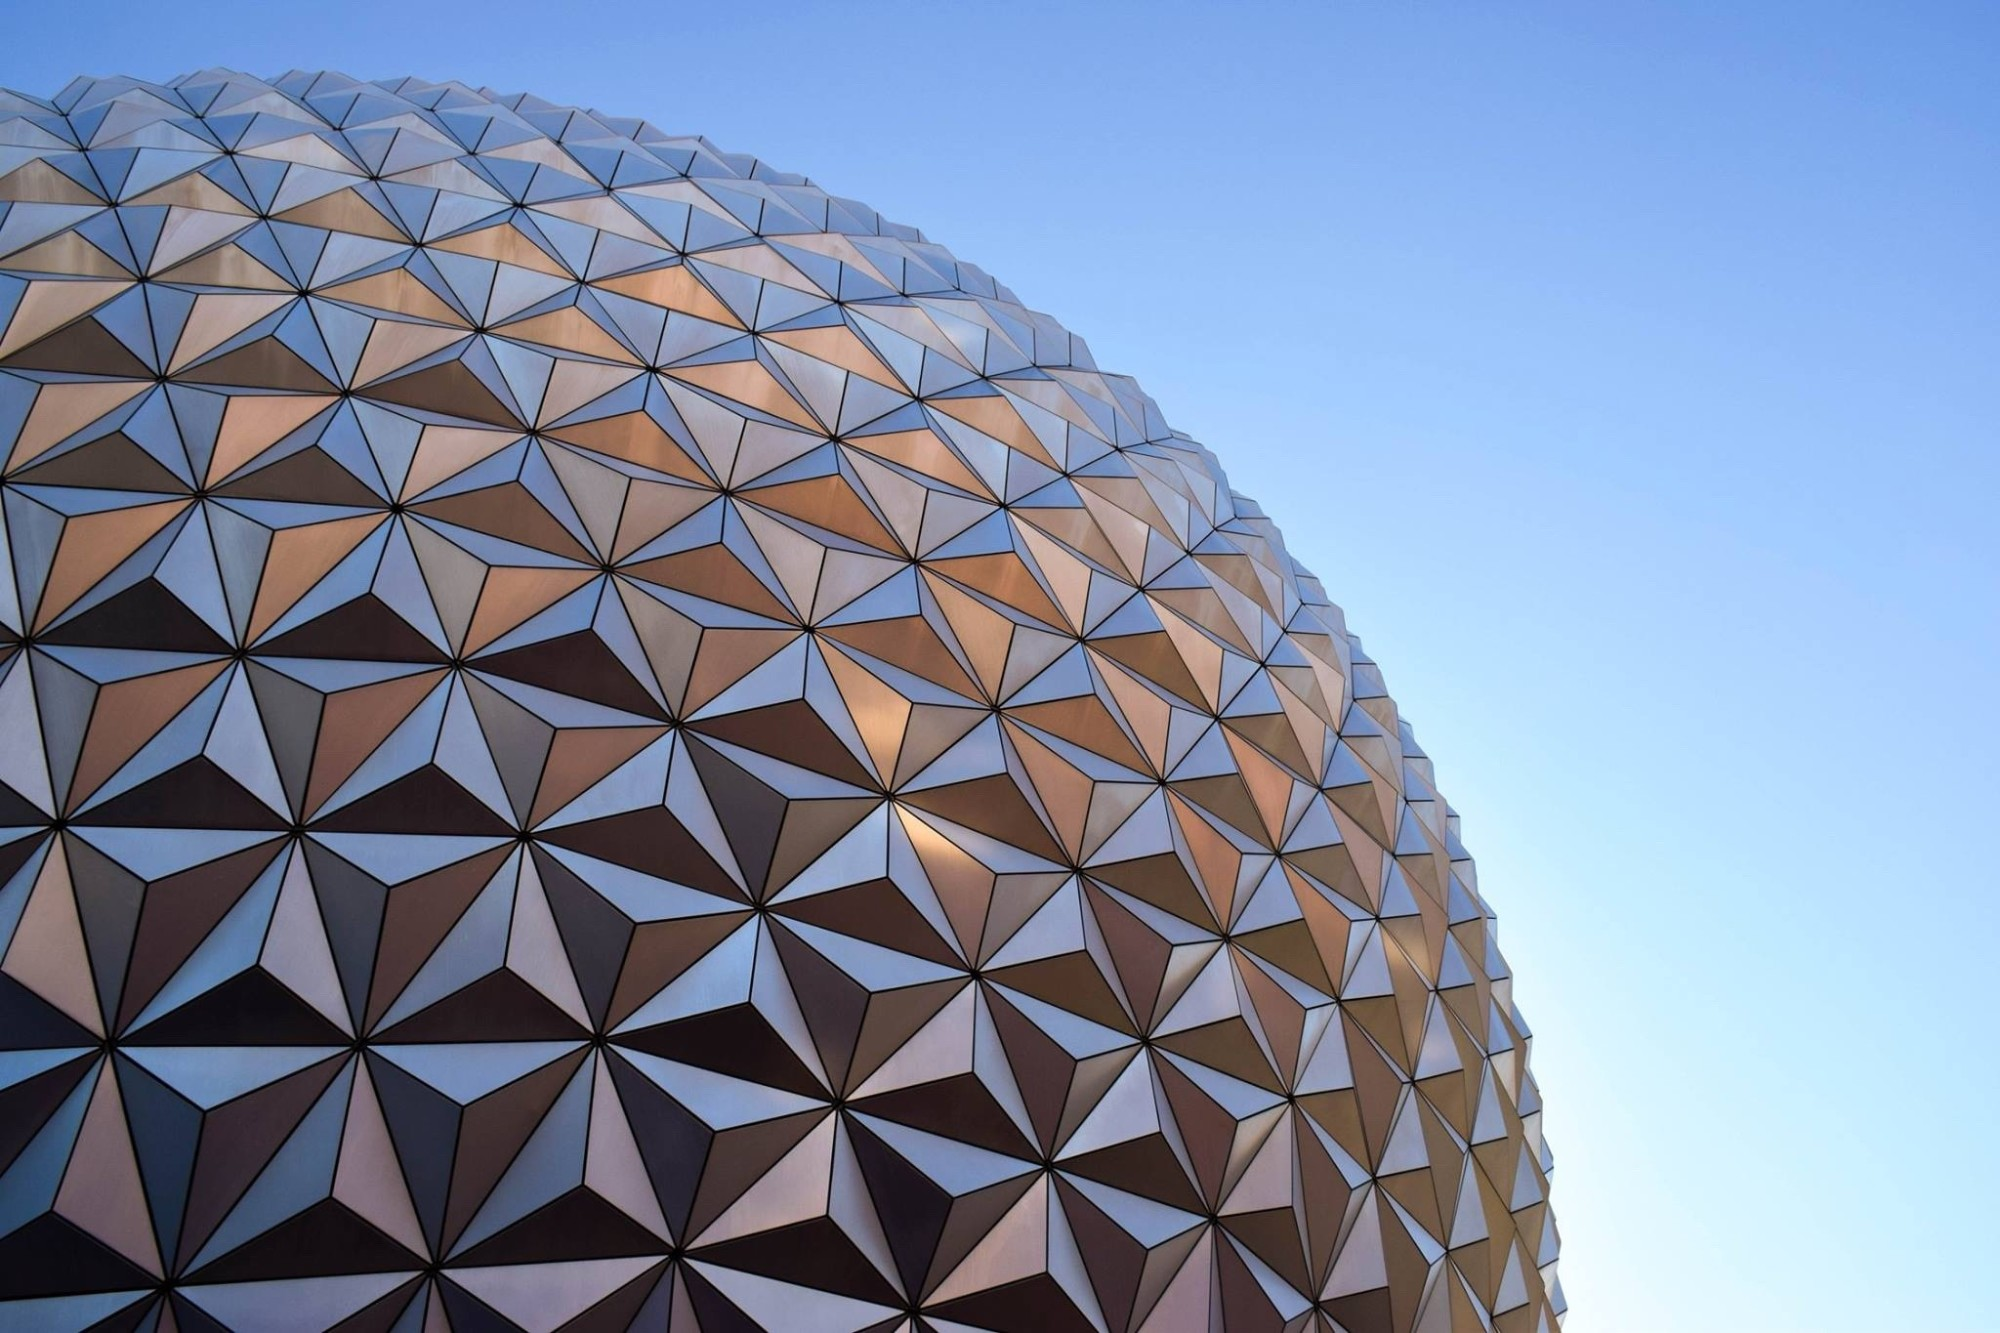 I'm Going to Disney World! 5 Incredible Things to Do at Disney World